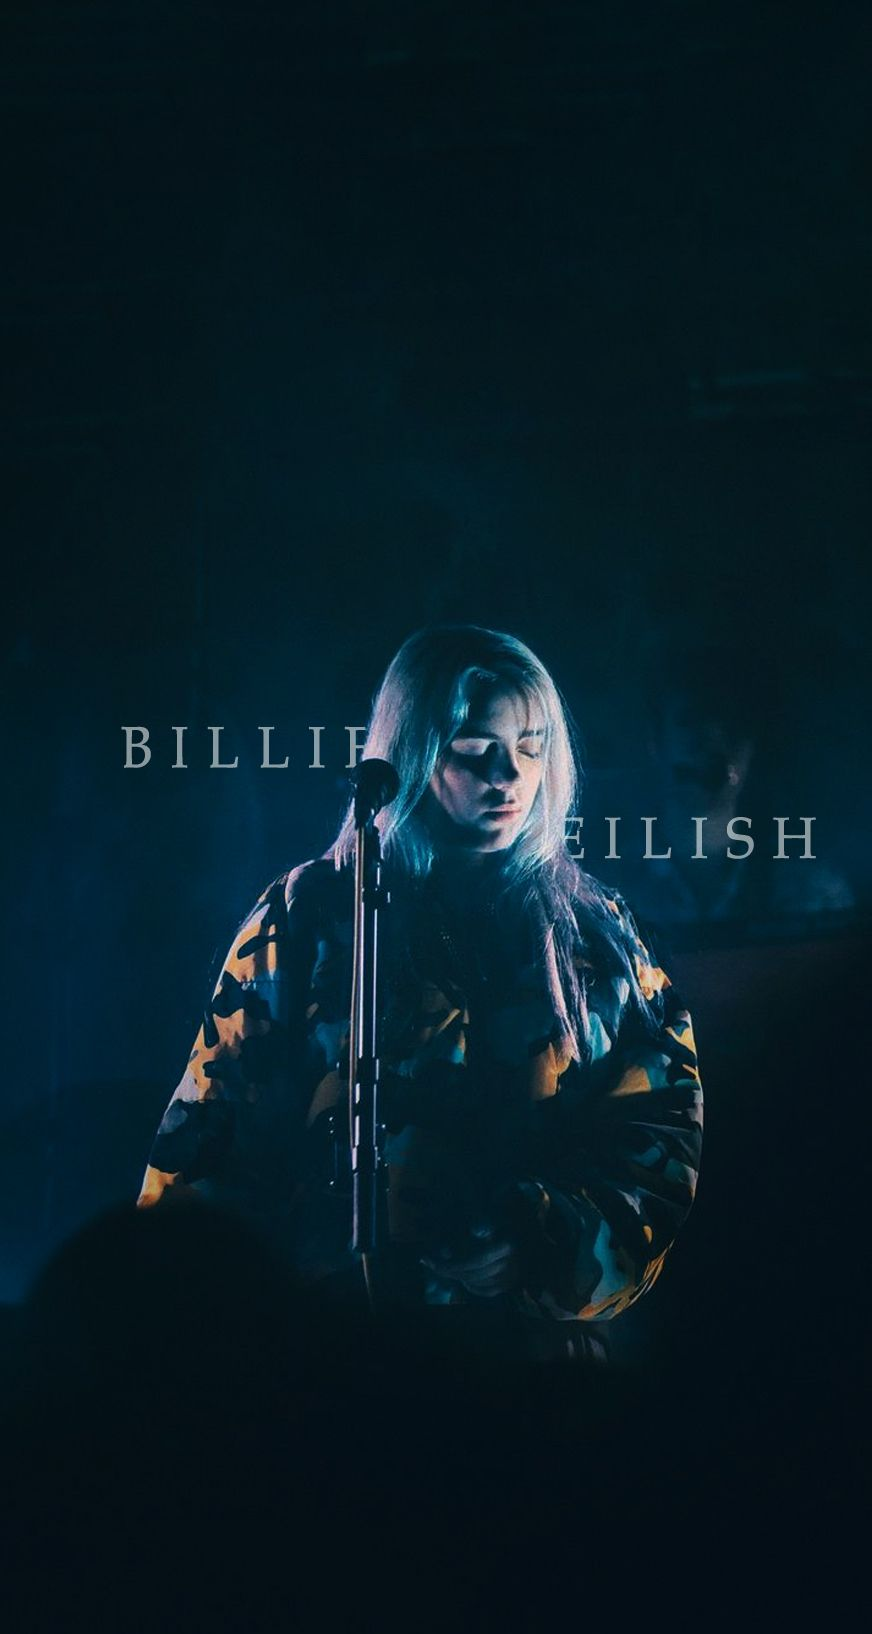 Wallpapers 4k Free Iphone Mobile Games Billie Billie Eilish Singer